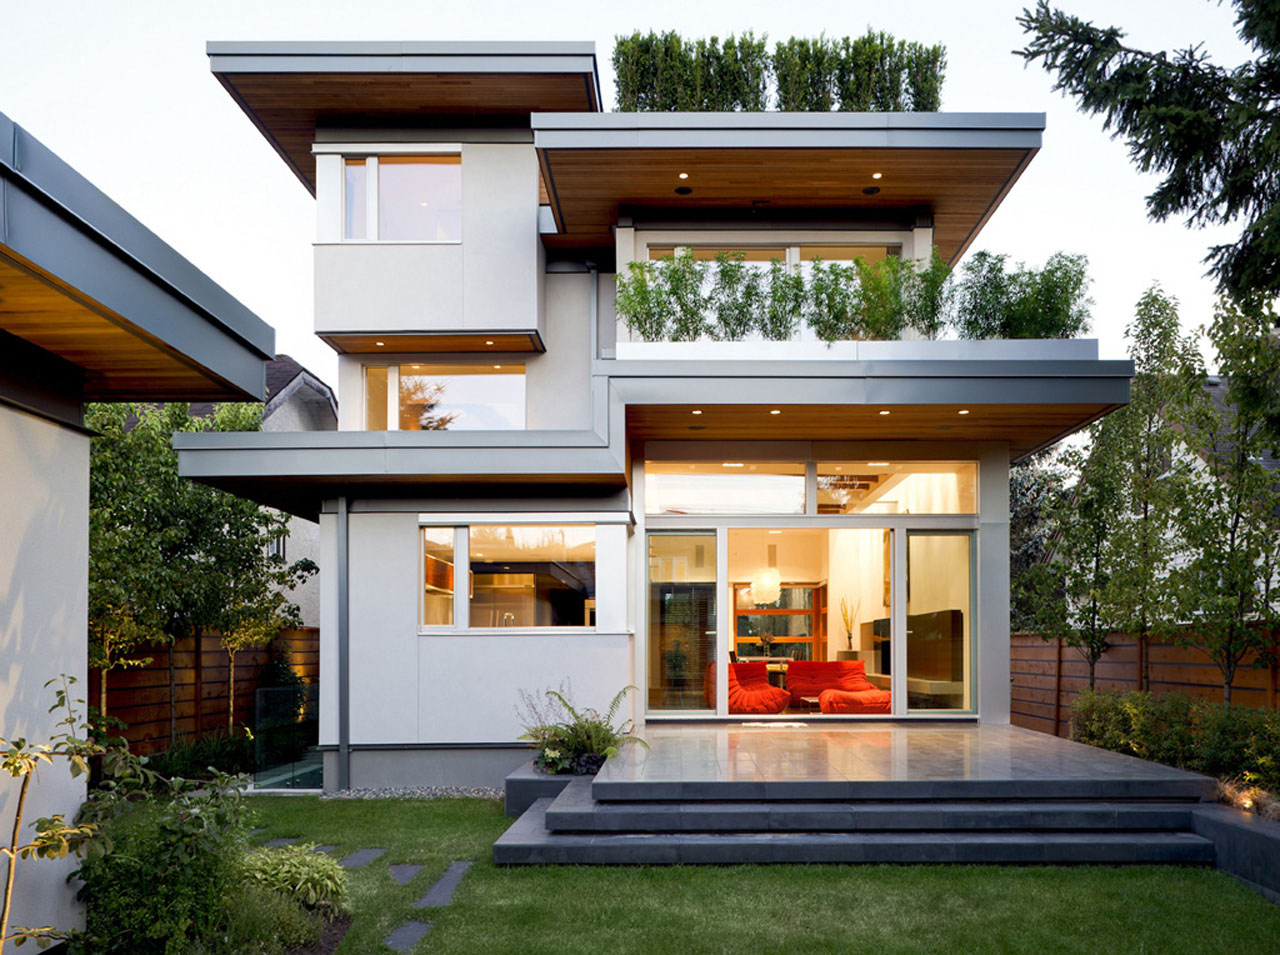 sustainable home design in vancouver - Home Design Picture